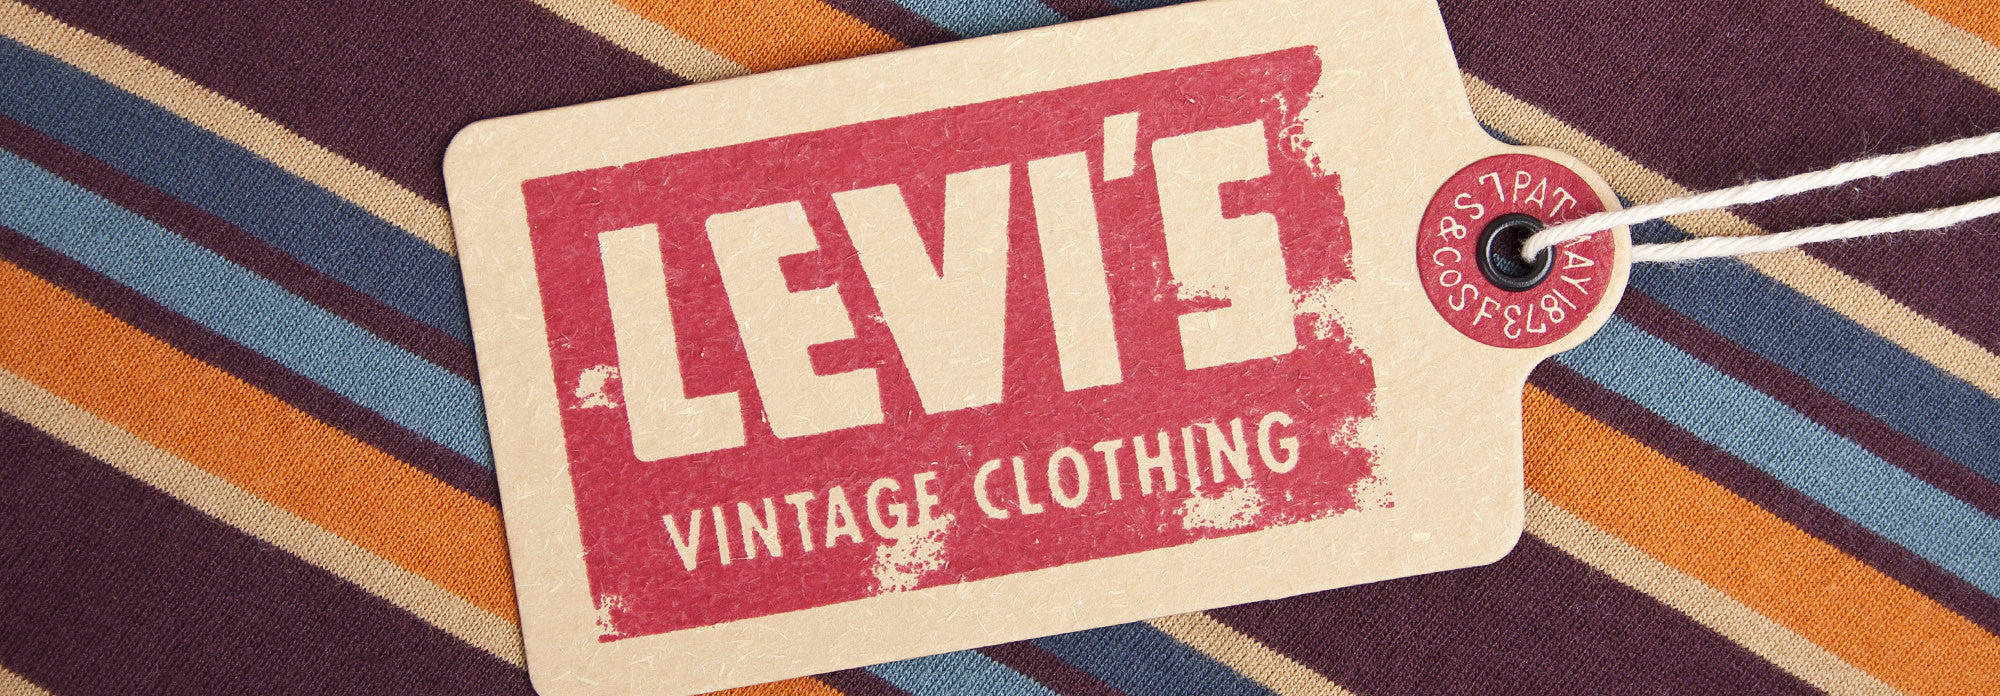 Levi's® Vintage Clothing Shop Window